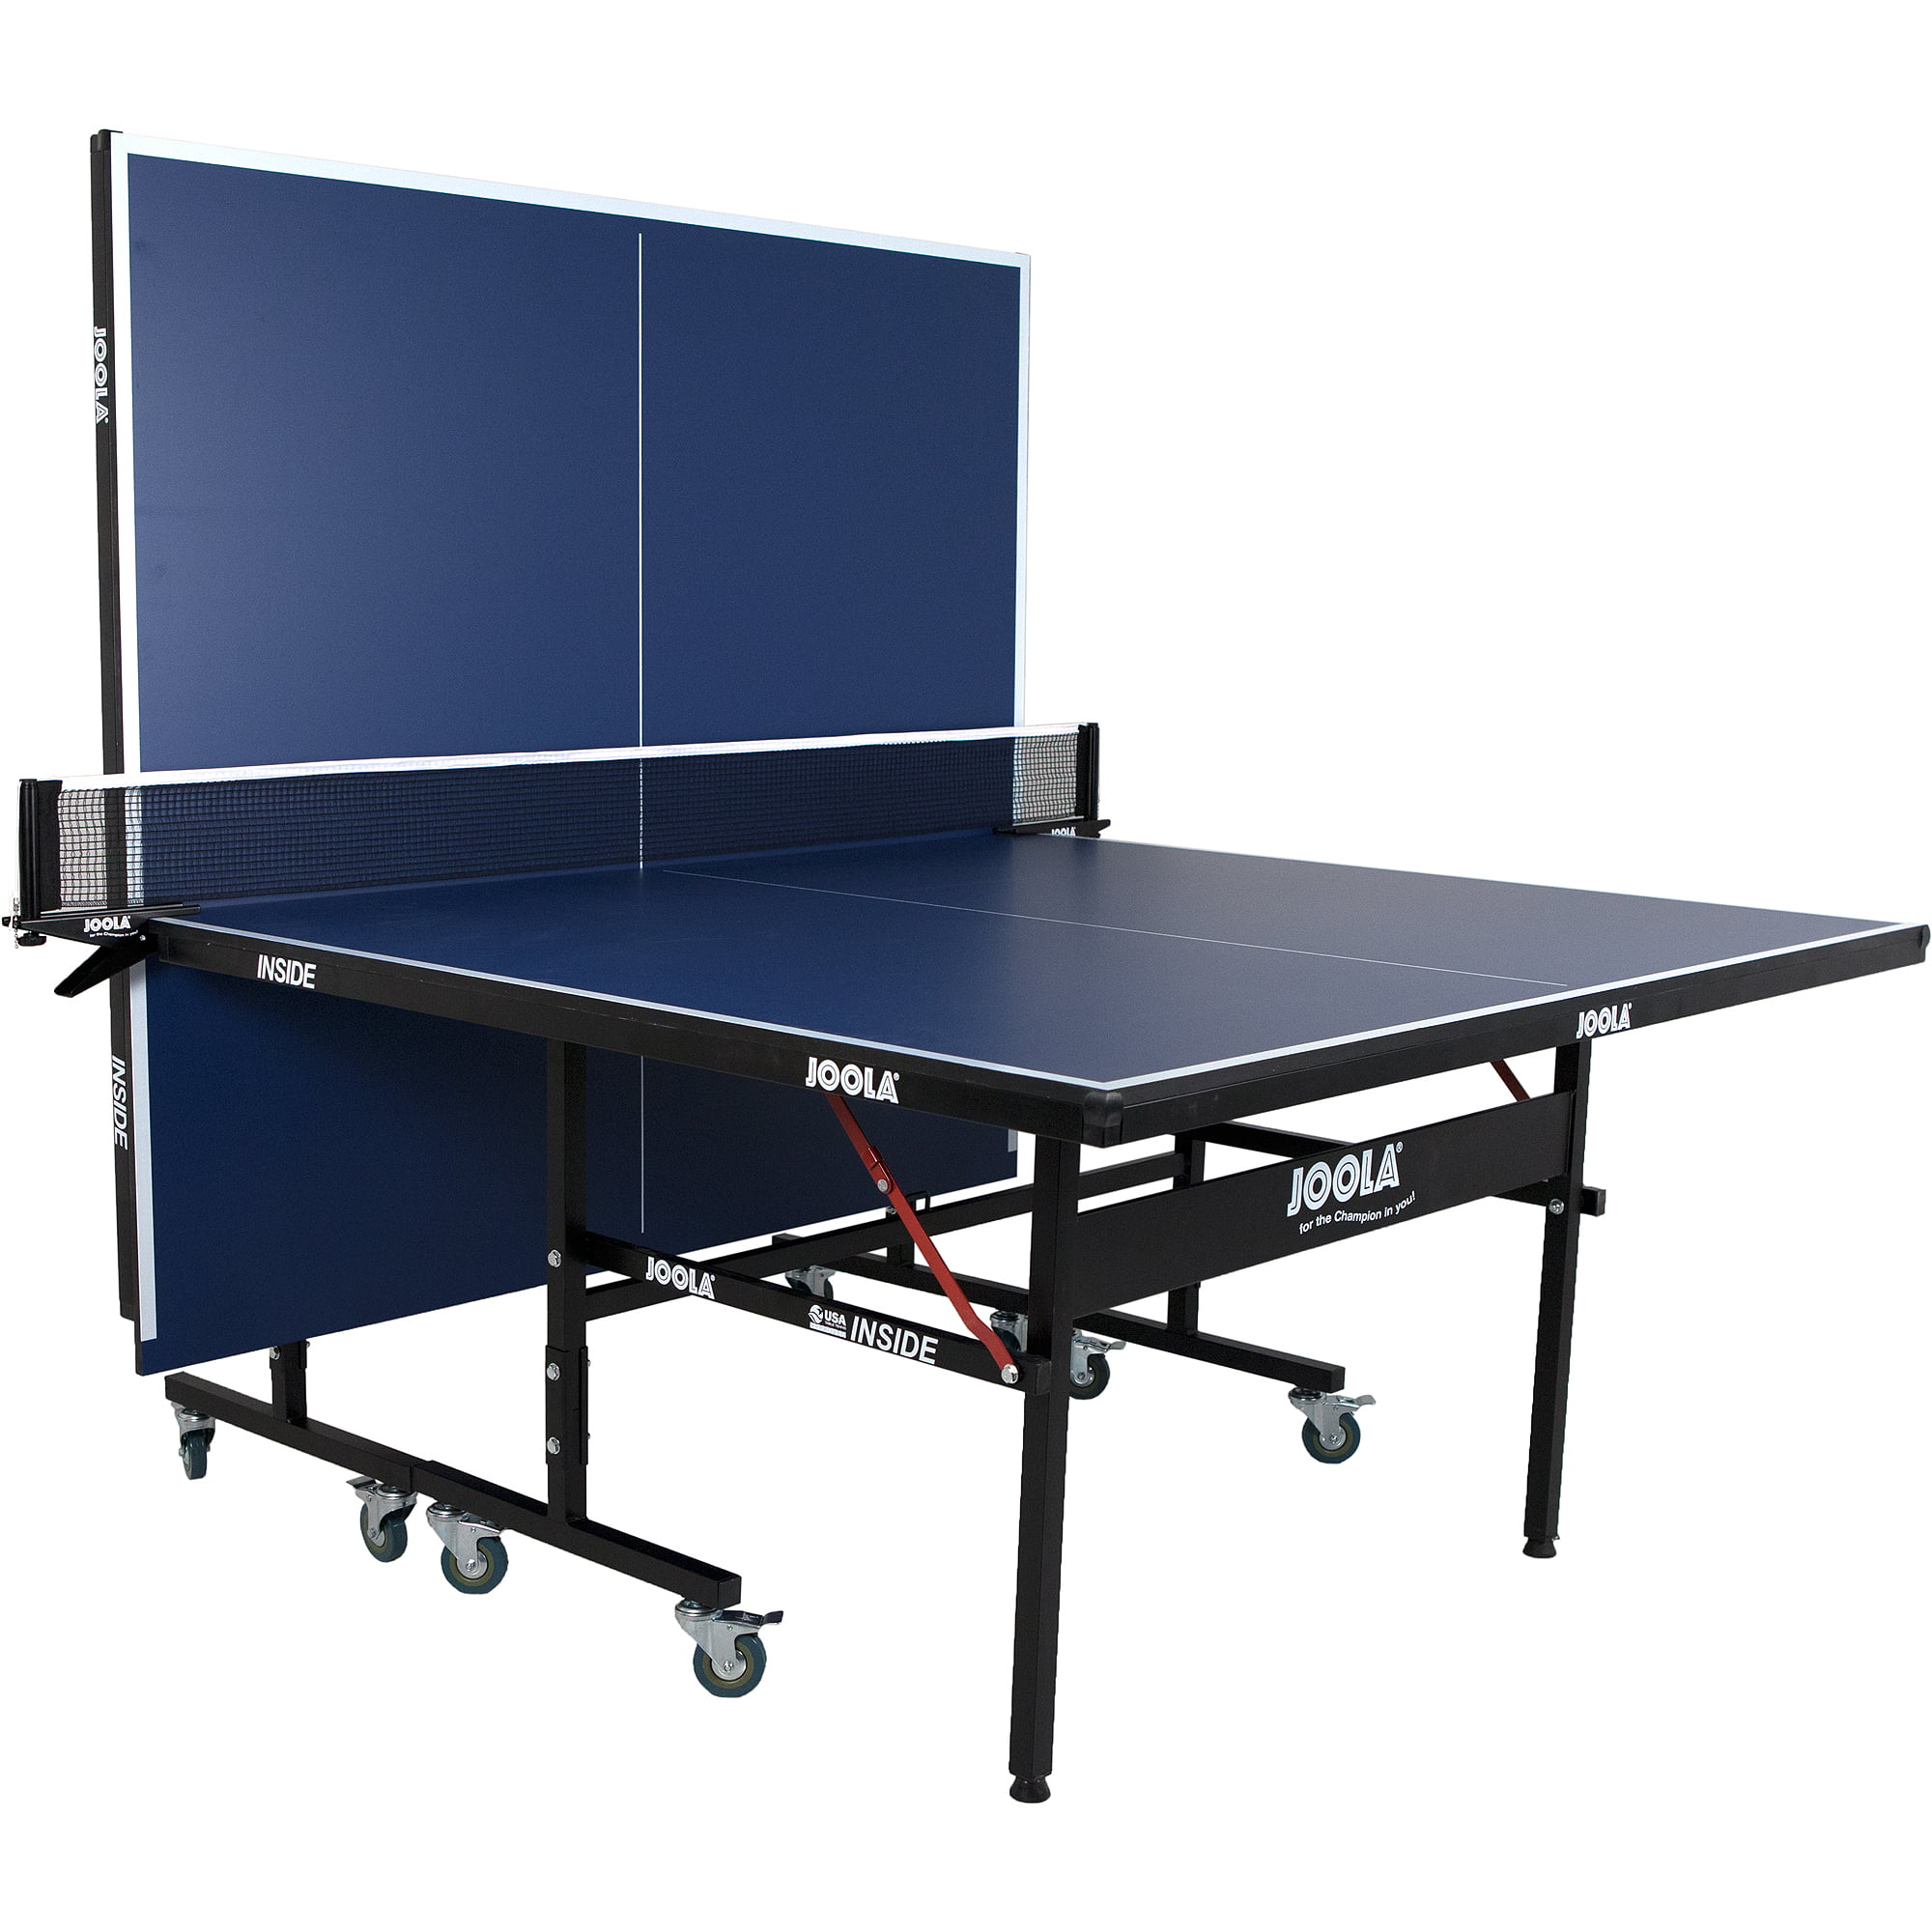 sc 1 st  Walmart & Hathaway Crossover 60-in Portable Table Tennis Table - Walmart.com